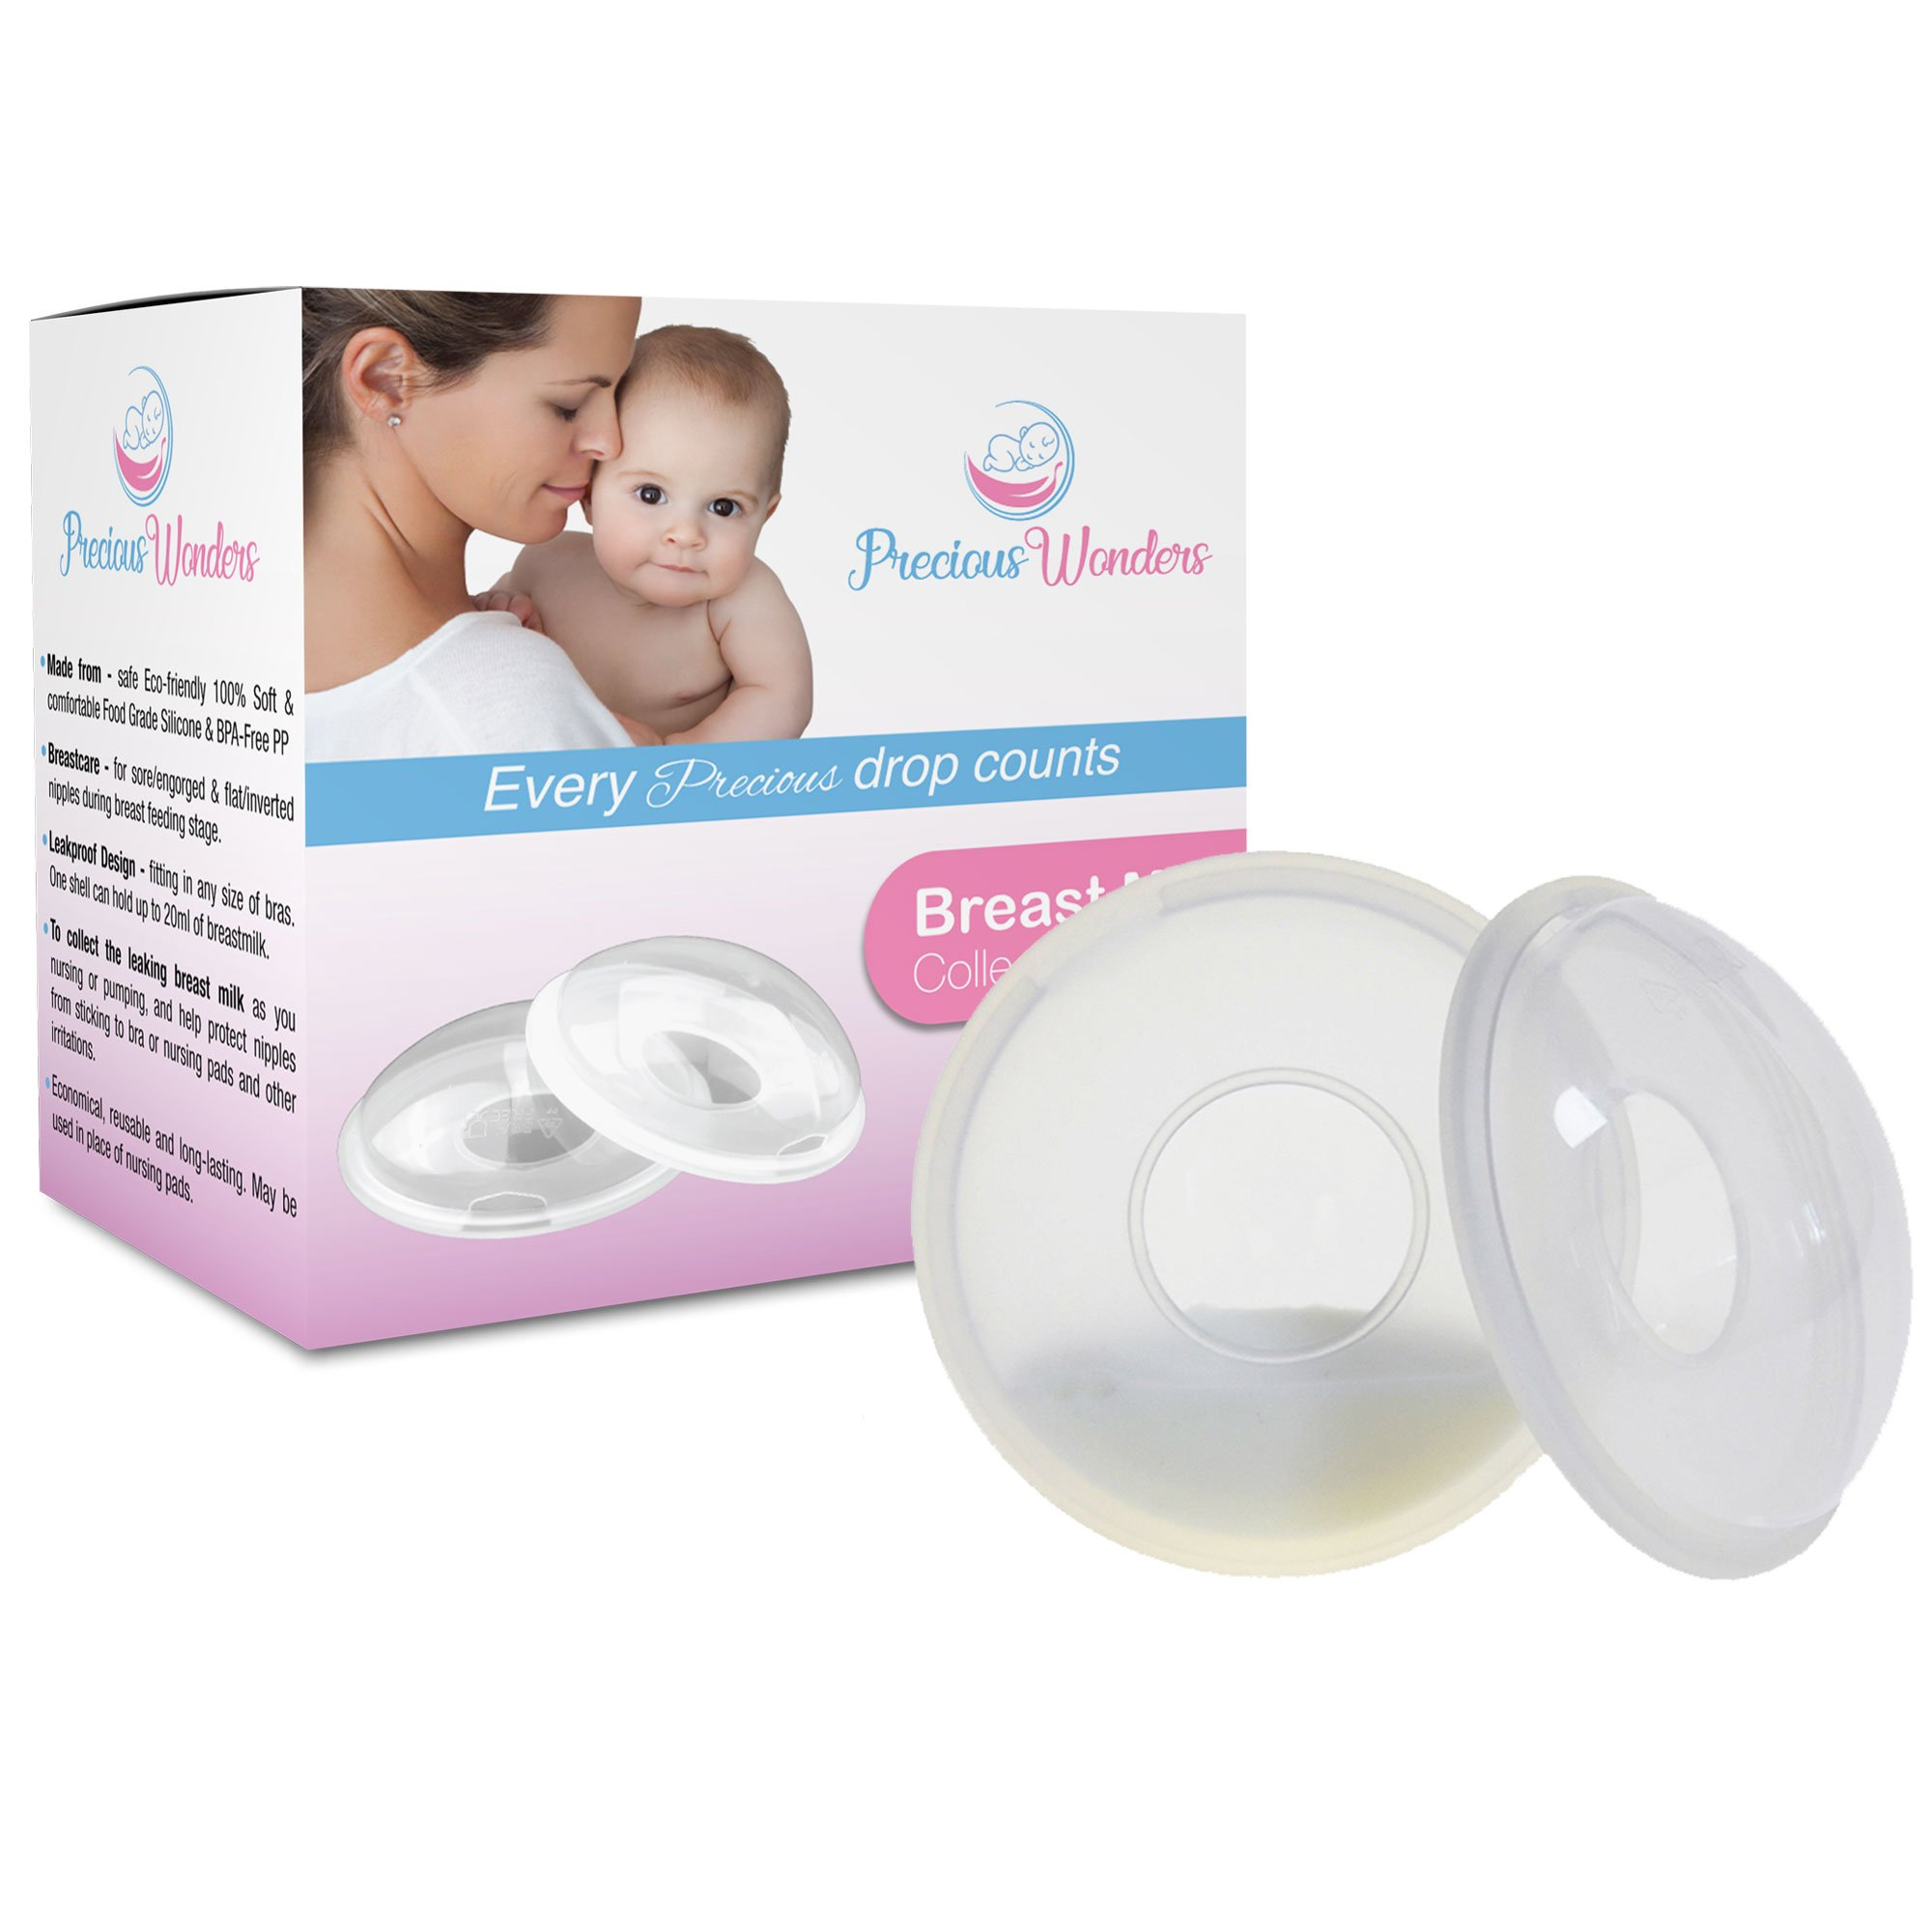 Breastfeeding Milk Saver, Nursing cups, Breast Shells, Collect Breastmilk Letdown, Milk Collector, Protect Sore Nipples, Soft Flexible Silicone, Breast Pad Compliment, Reusable 2-PK - Precious Wonders